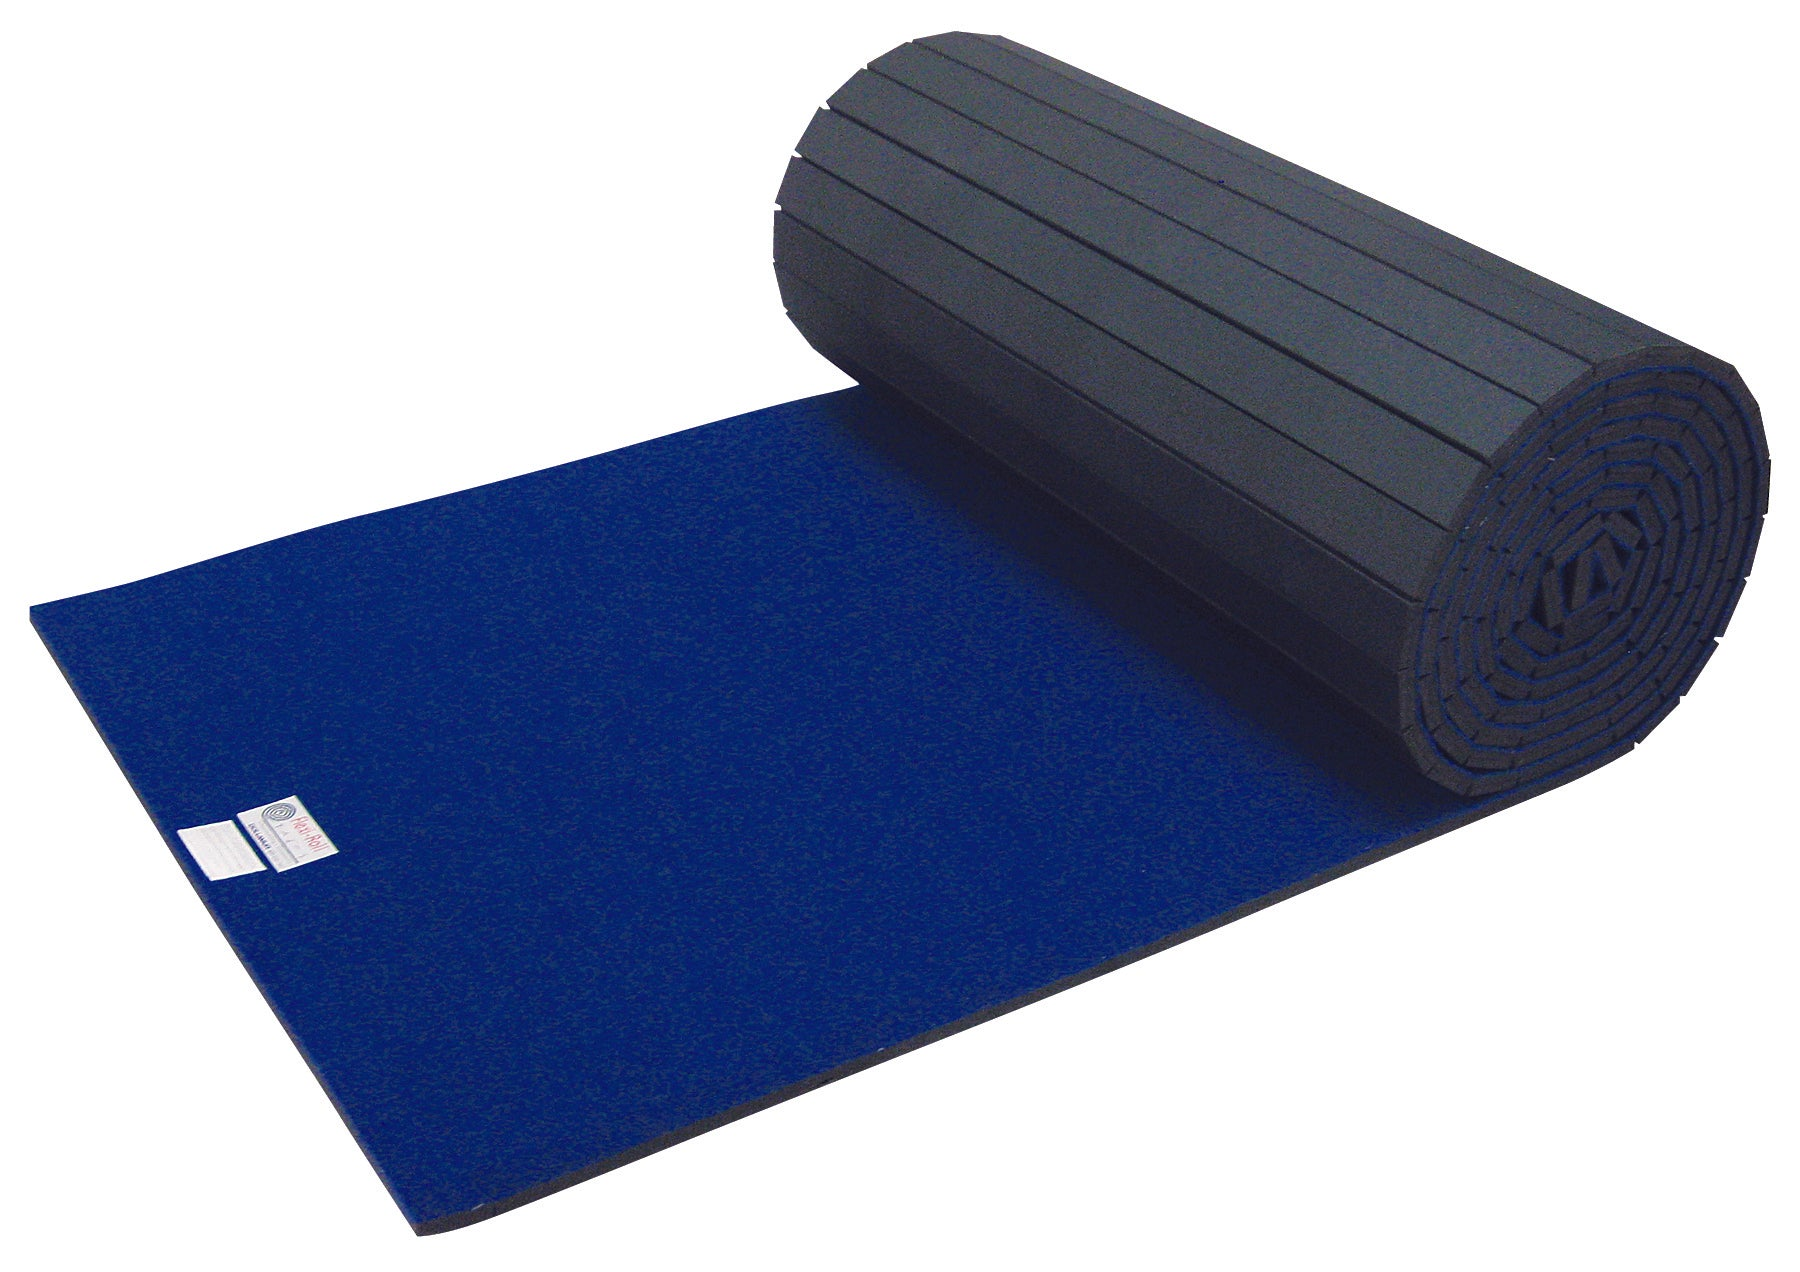 Carpet Foam Mats